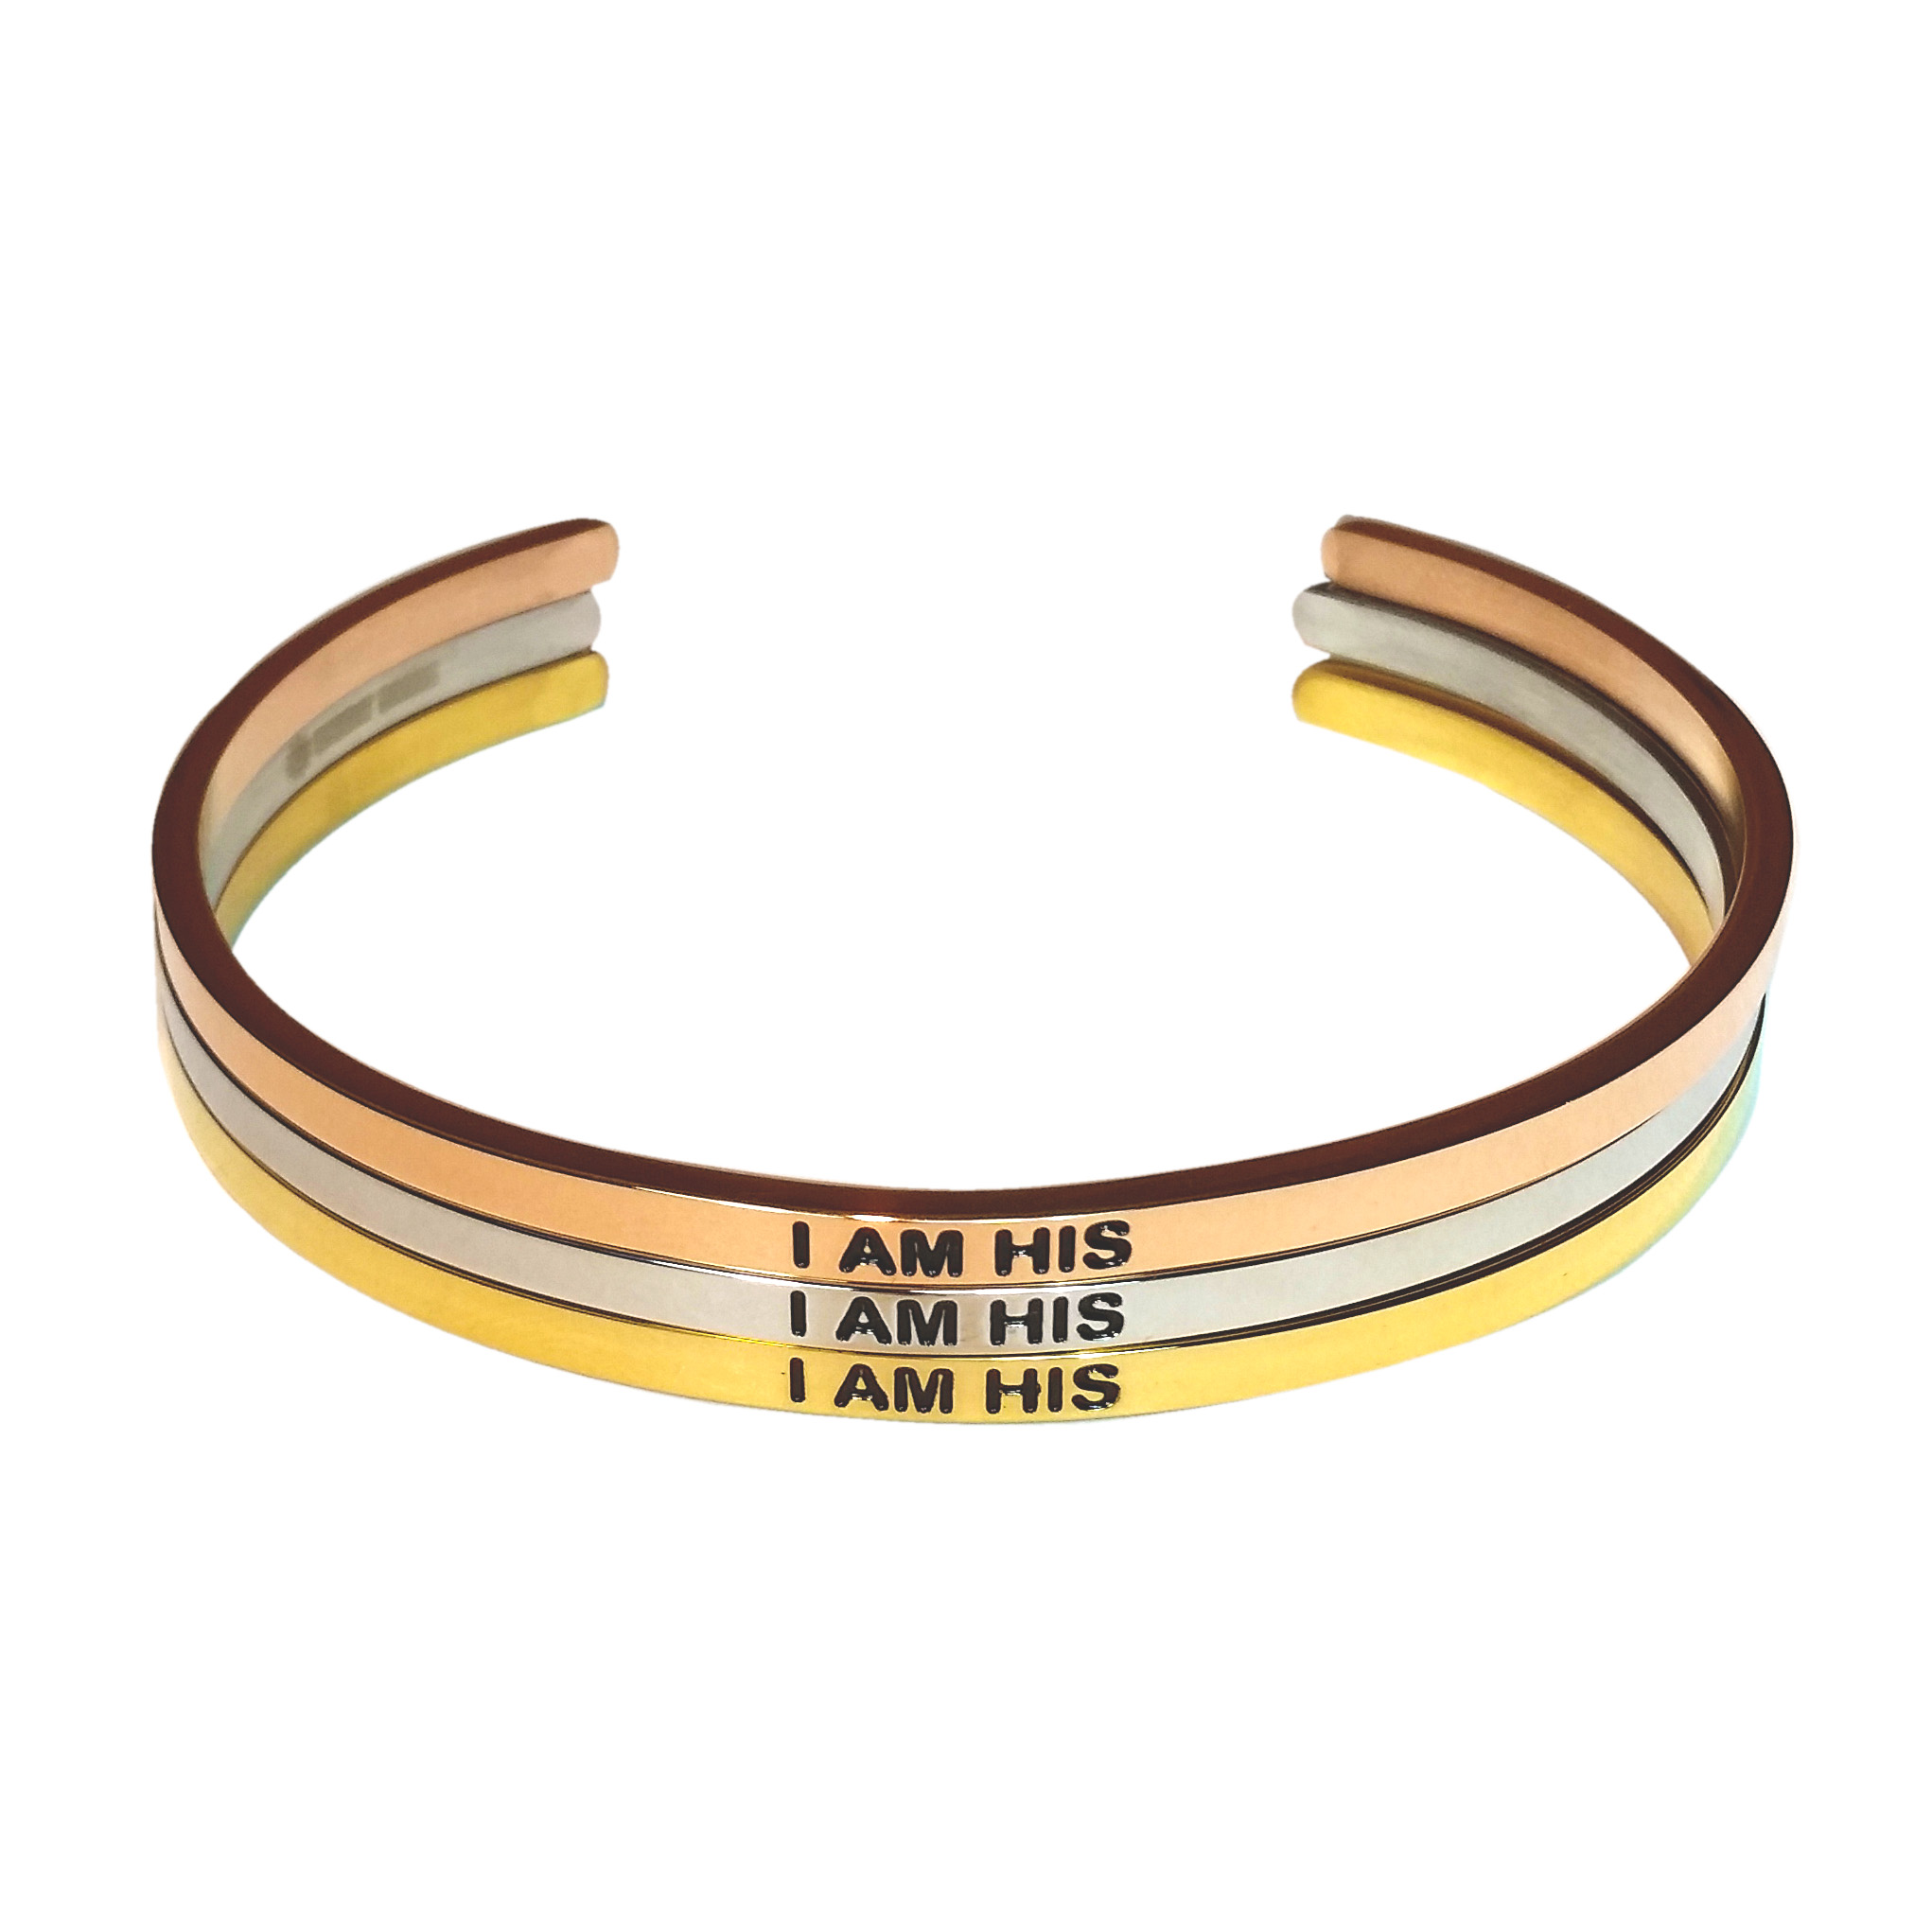 I AM HIS Bangles. Gold, Silver, Rose Gold Jewelry.